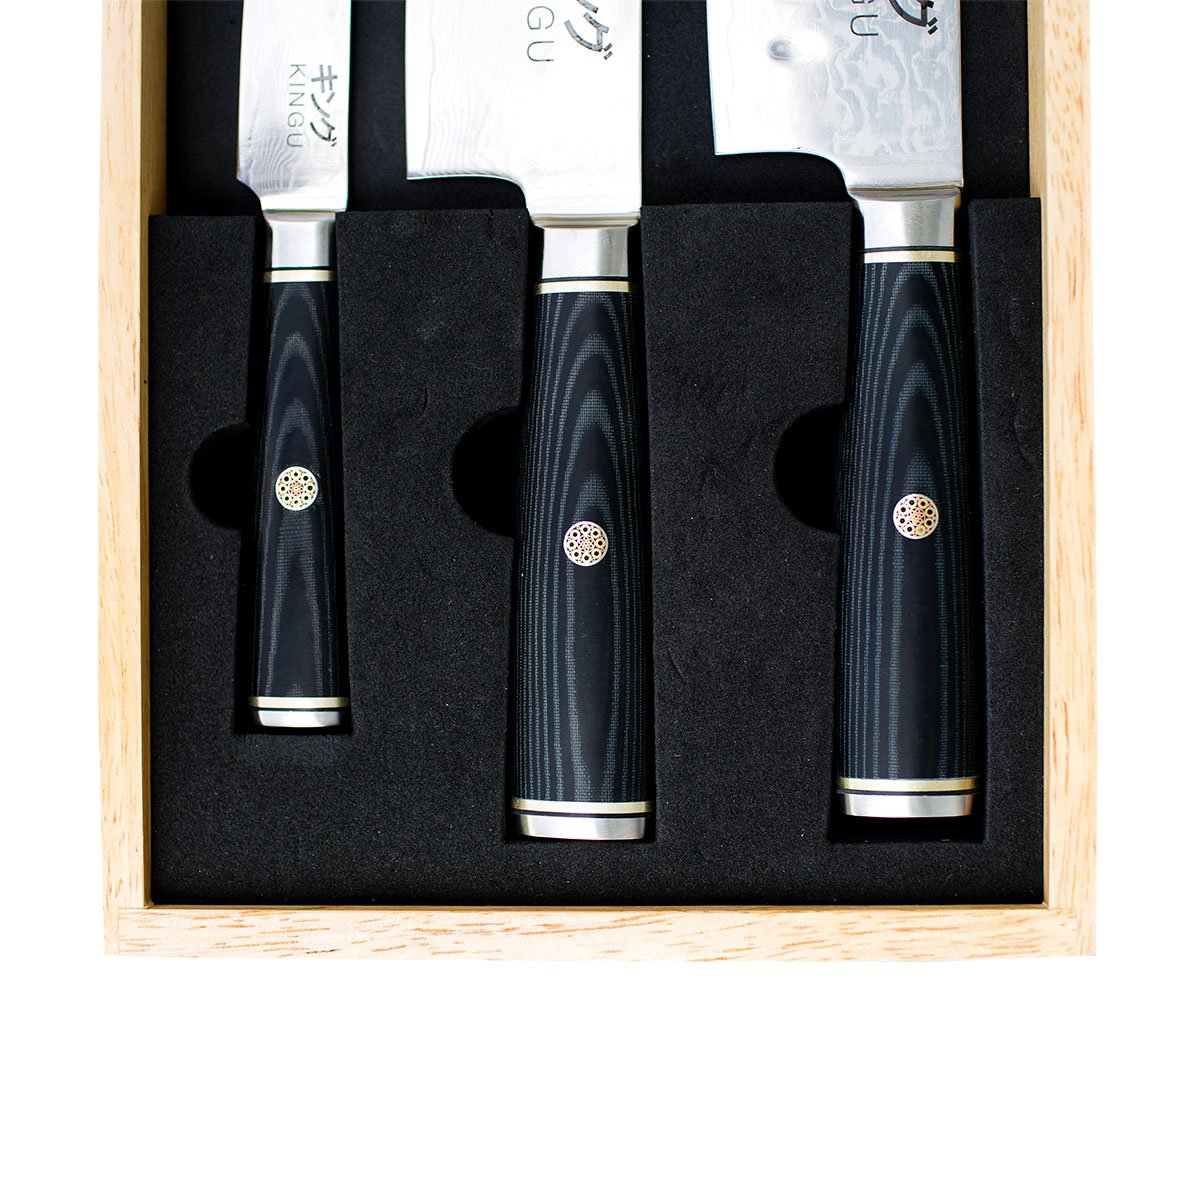 KINGU CUTLERY BLACK SERIES SET | Carbon Japanese VG-10 Stainless Steel Blade - Razor Sharp 67 Layers Steel with Black Pakka Wood Handle, Mosaic Pin | Traditional Designed Oak Wooden Box by KINGU CUTLERY